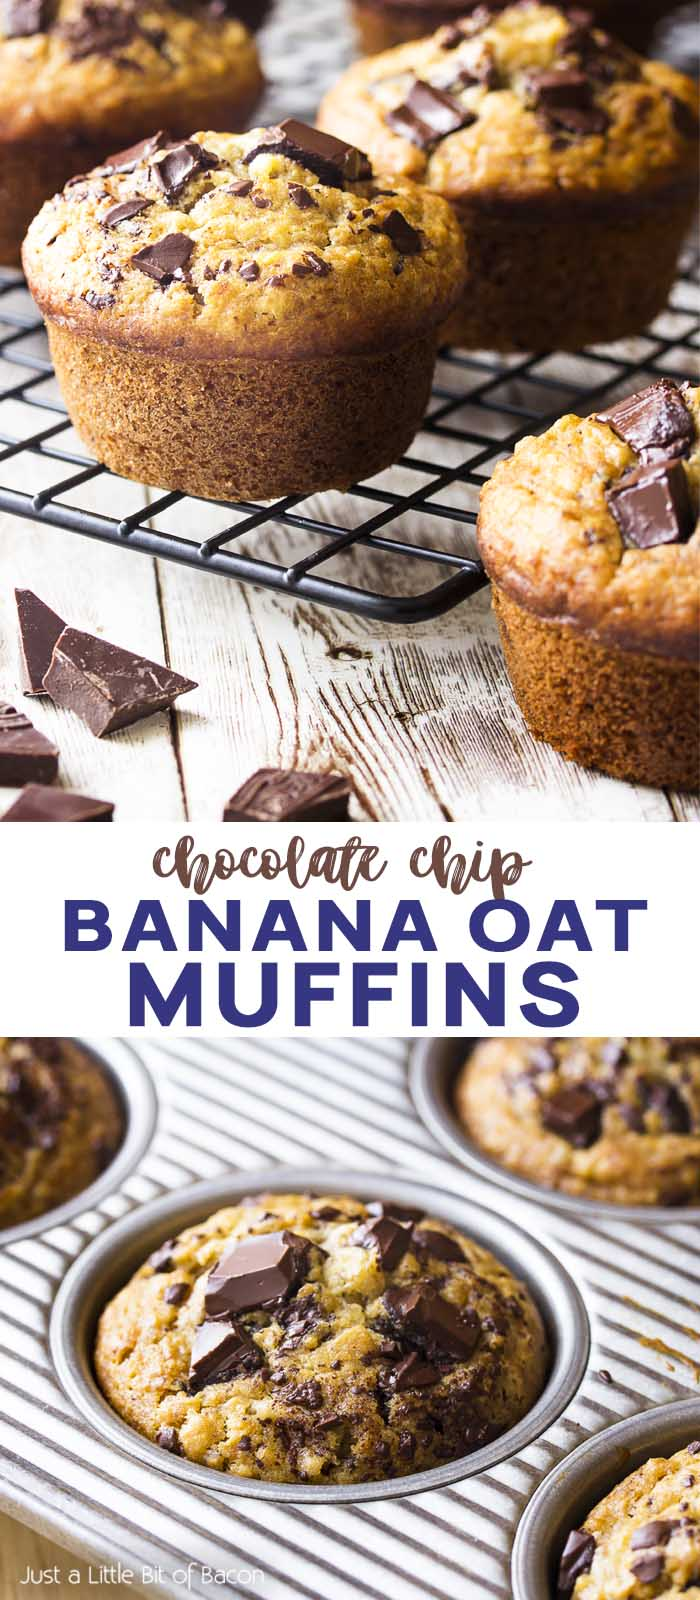 Muffins in the tray and on a rack with text overlay - Banana Oat Muffins.